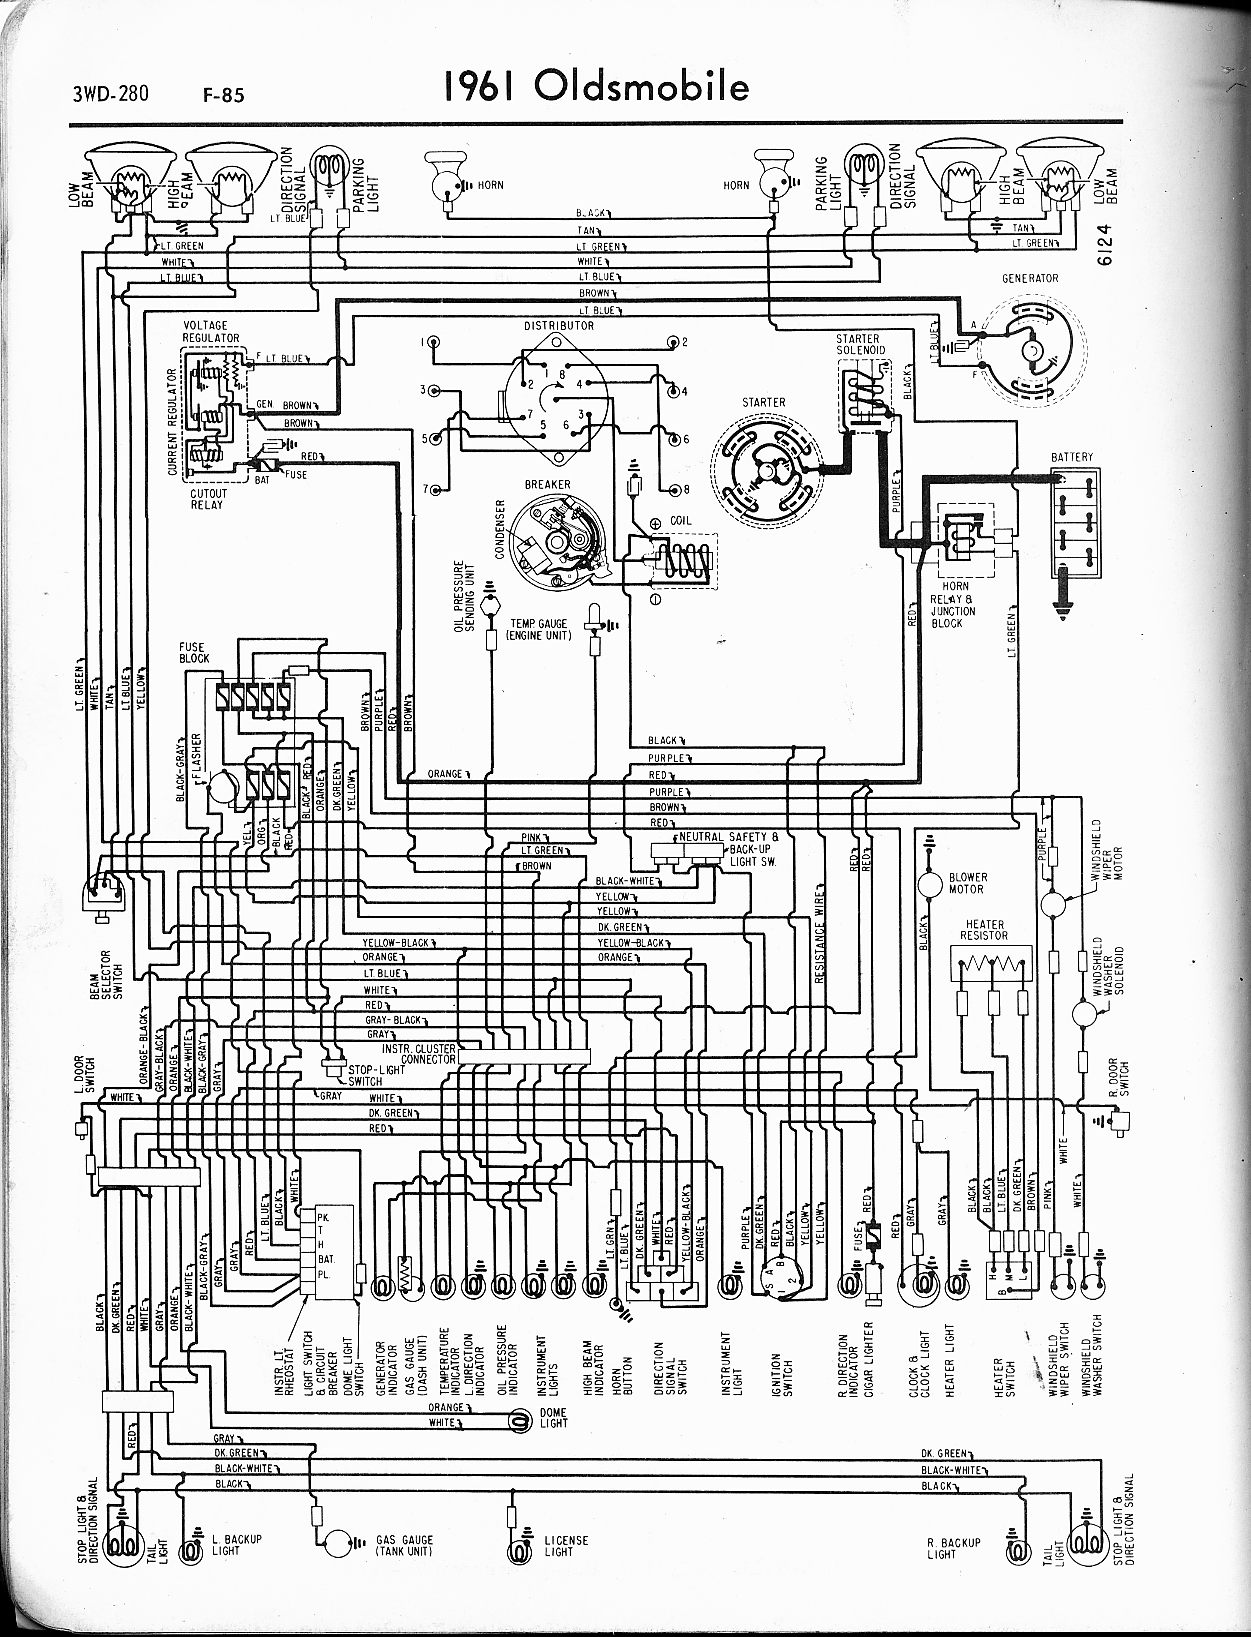 [DIAGRAM_1JK]  ZN_7412] Engine Wiring Harness Additionally 1970 Chevelle Cowl Induction Wiring  Download Diagram | 1966 Chevelle Engine Wiring Diagram Free Download |  | Rdona Heeve Mohammedshrine Librar Wiring 101